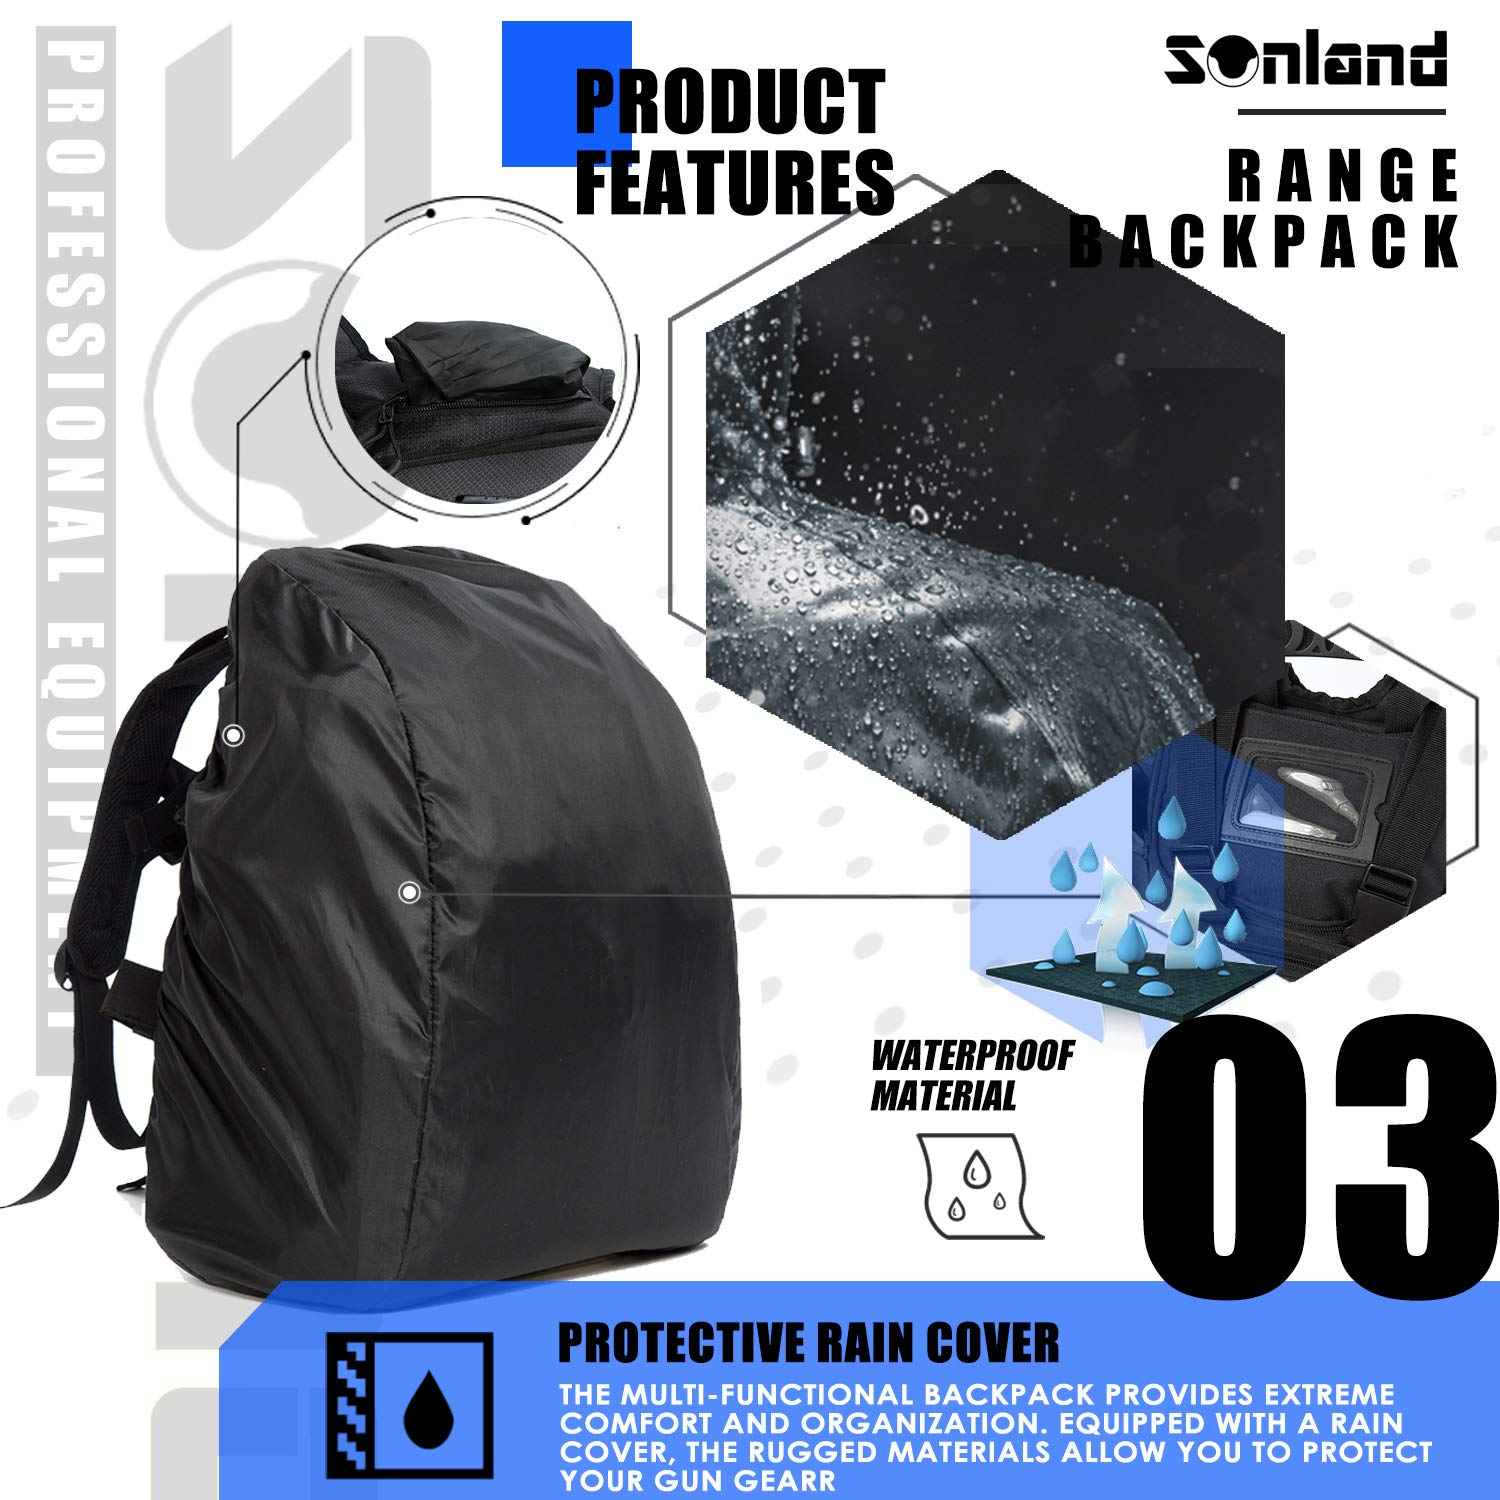 SUNLAND Range Bag Backpack,Gun Backpack with 3-Pistol Case and Protective Rain Cover,Tactical molle System & Lockable zippers-18'' x 14'' x 8'' (Blk) by SUNLAND (Image #4)